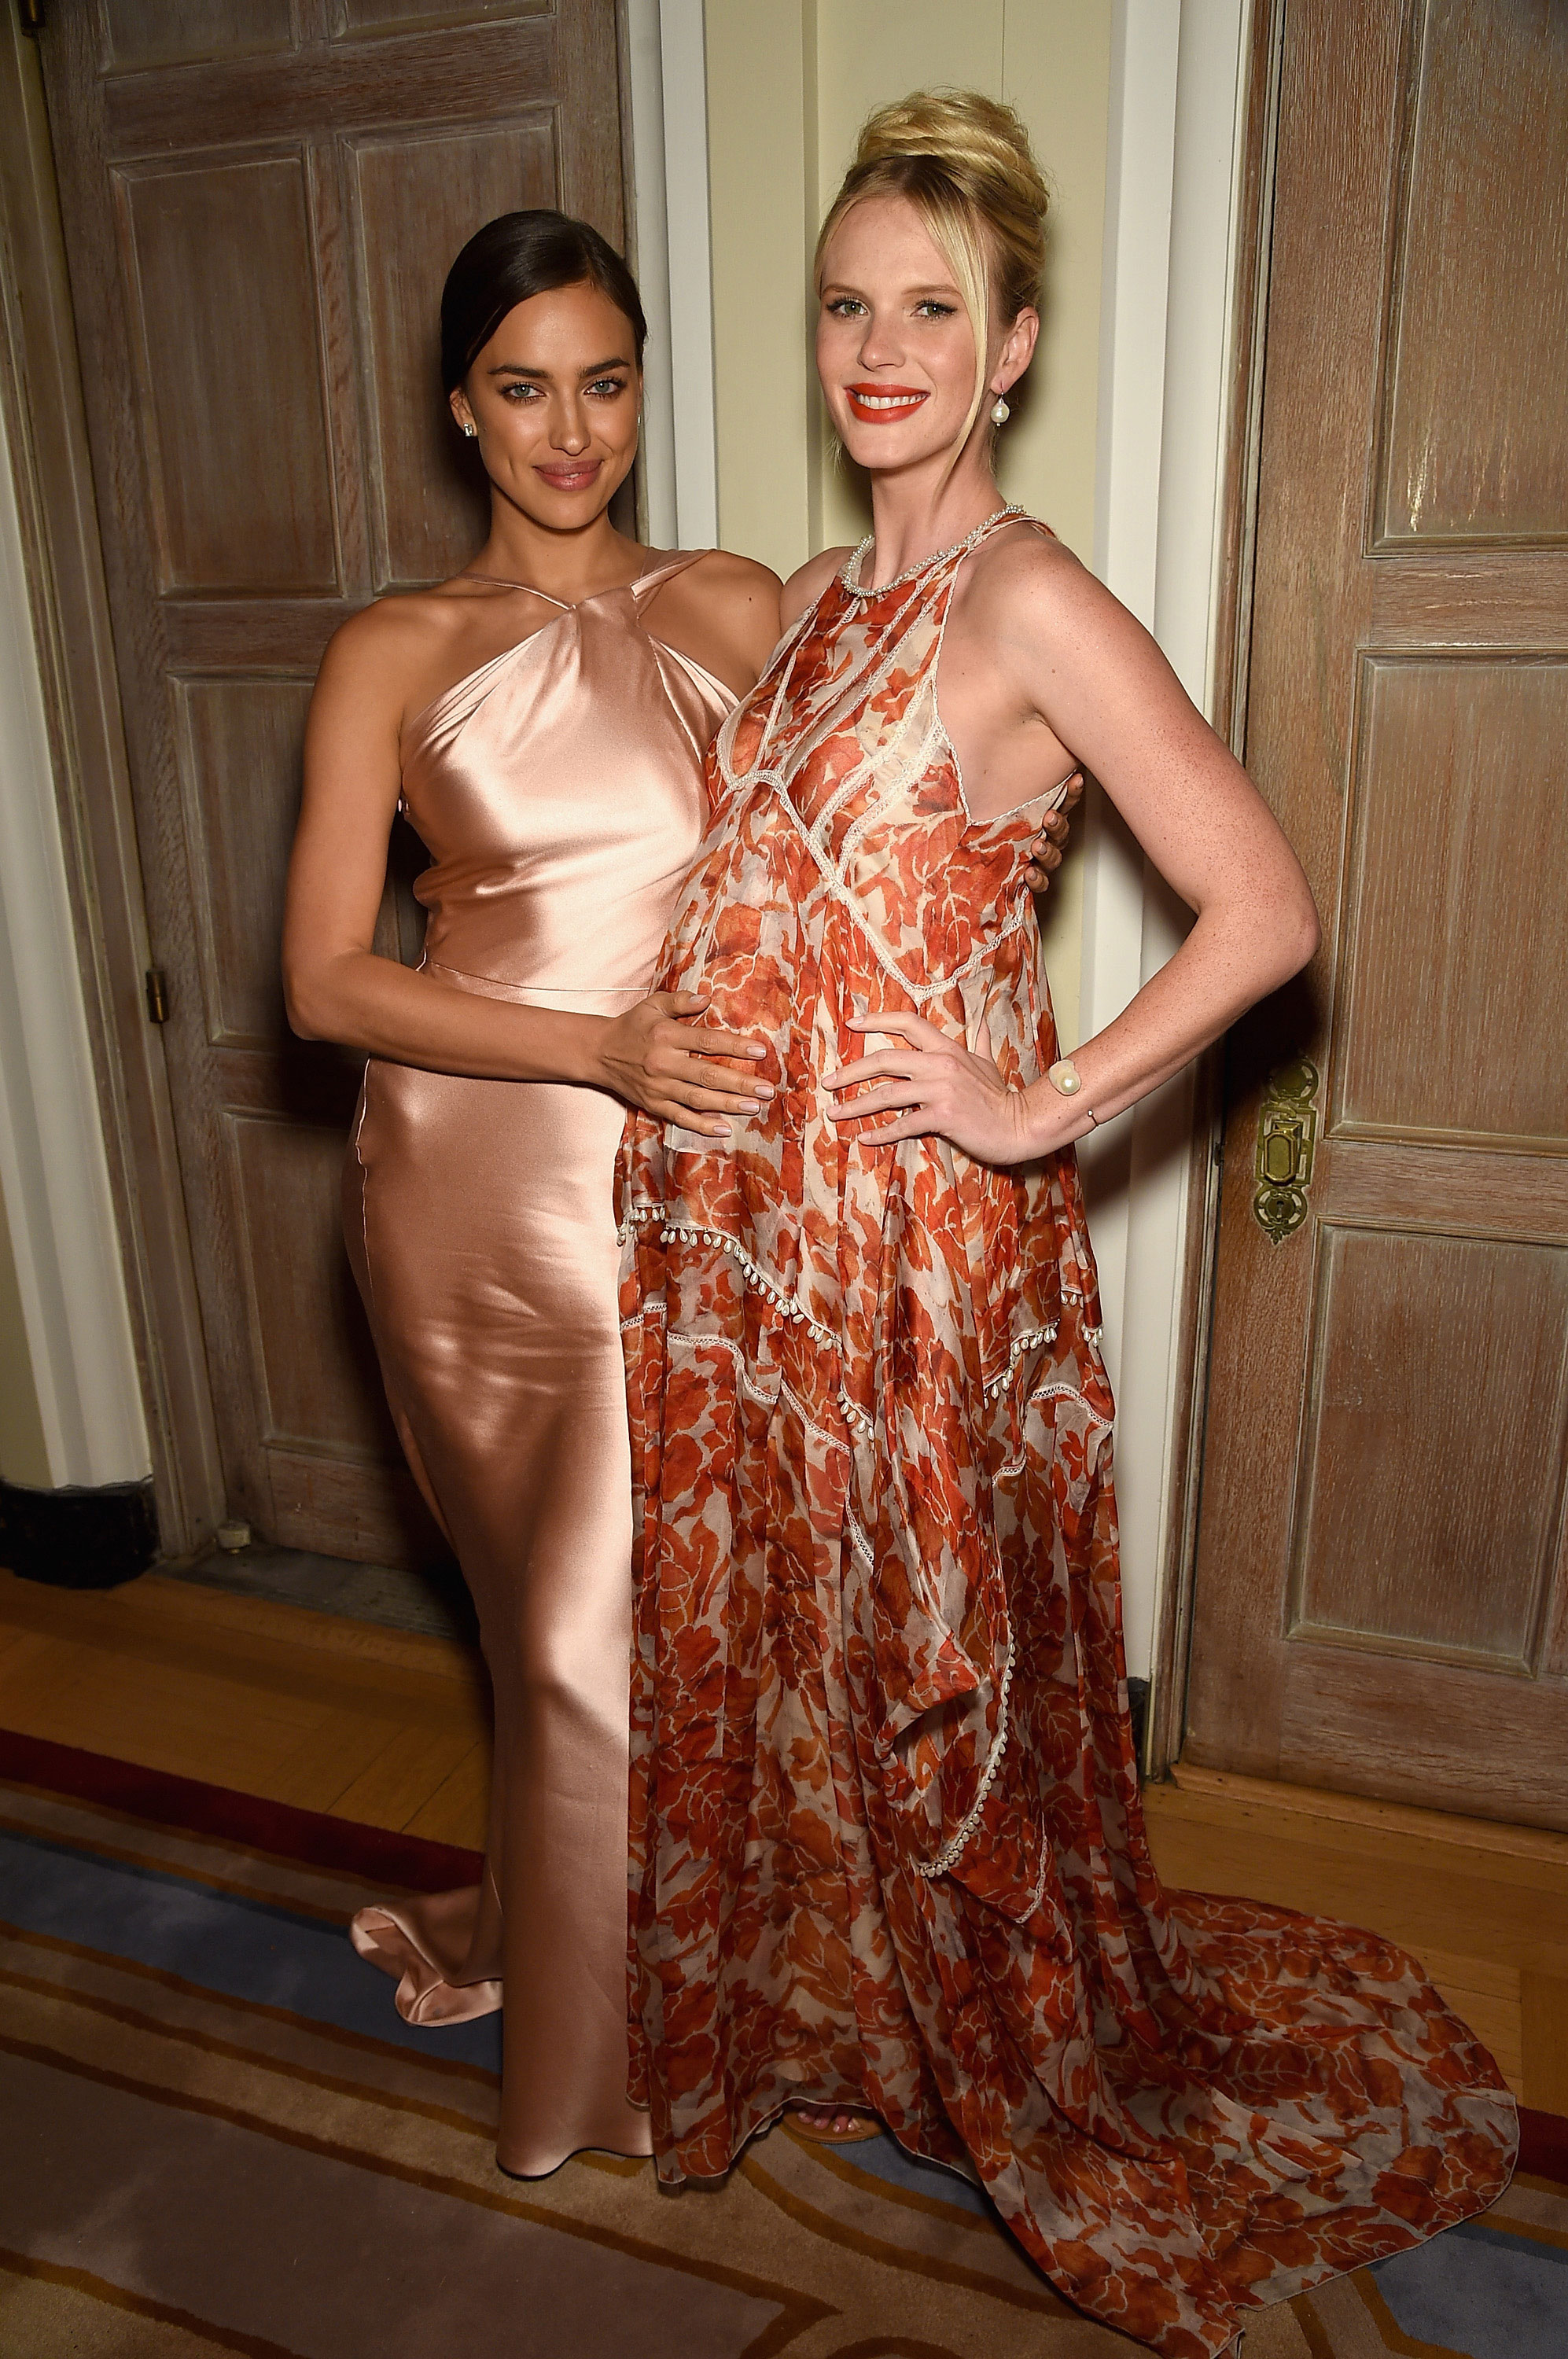 Irina Shayk and Anne V attend the Bloomberg & Vanity Fair cocktail reception following the 2015 WHCA Dinner.